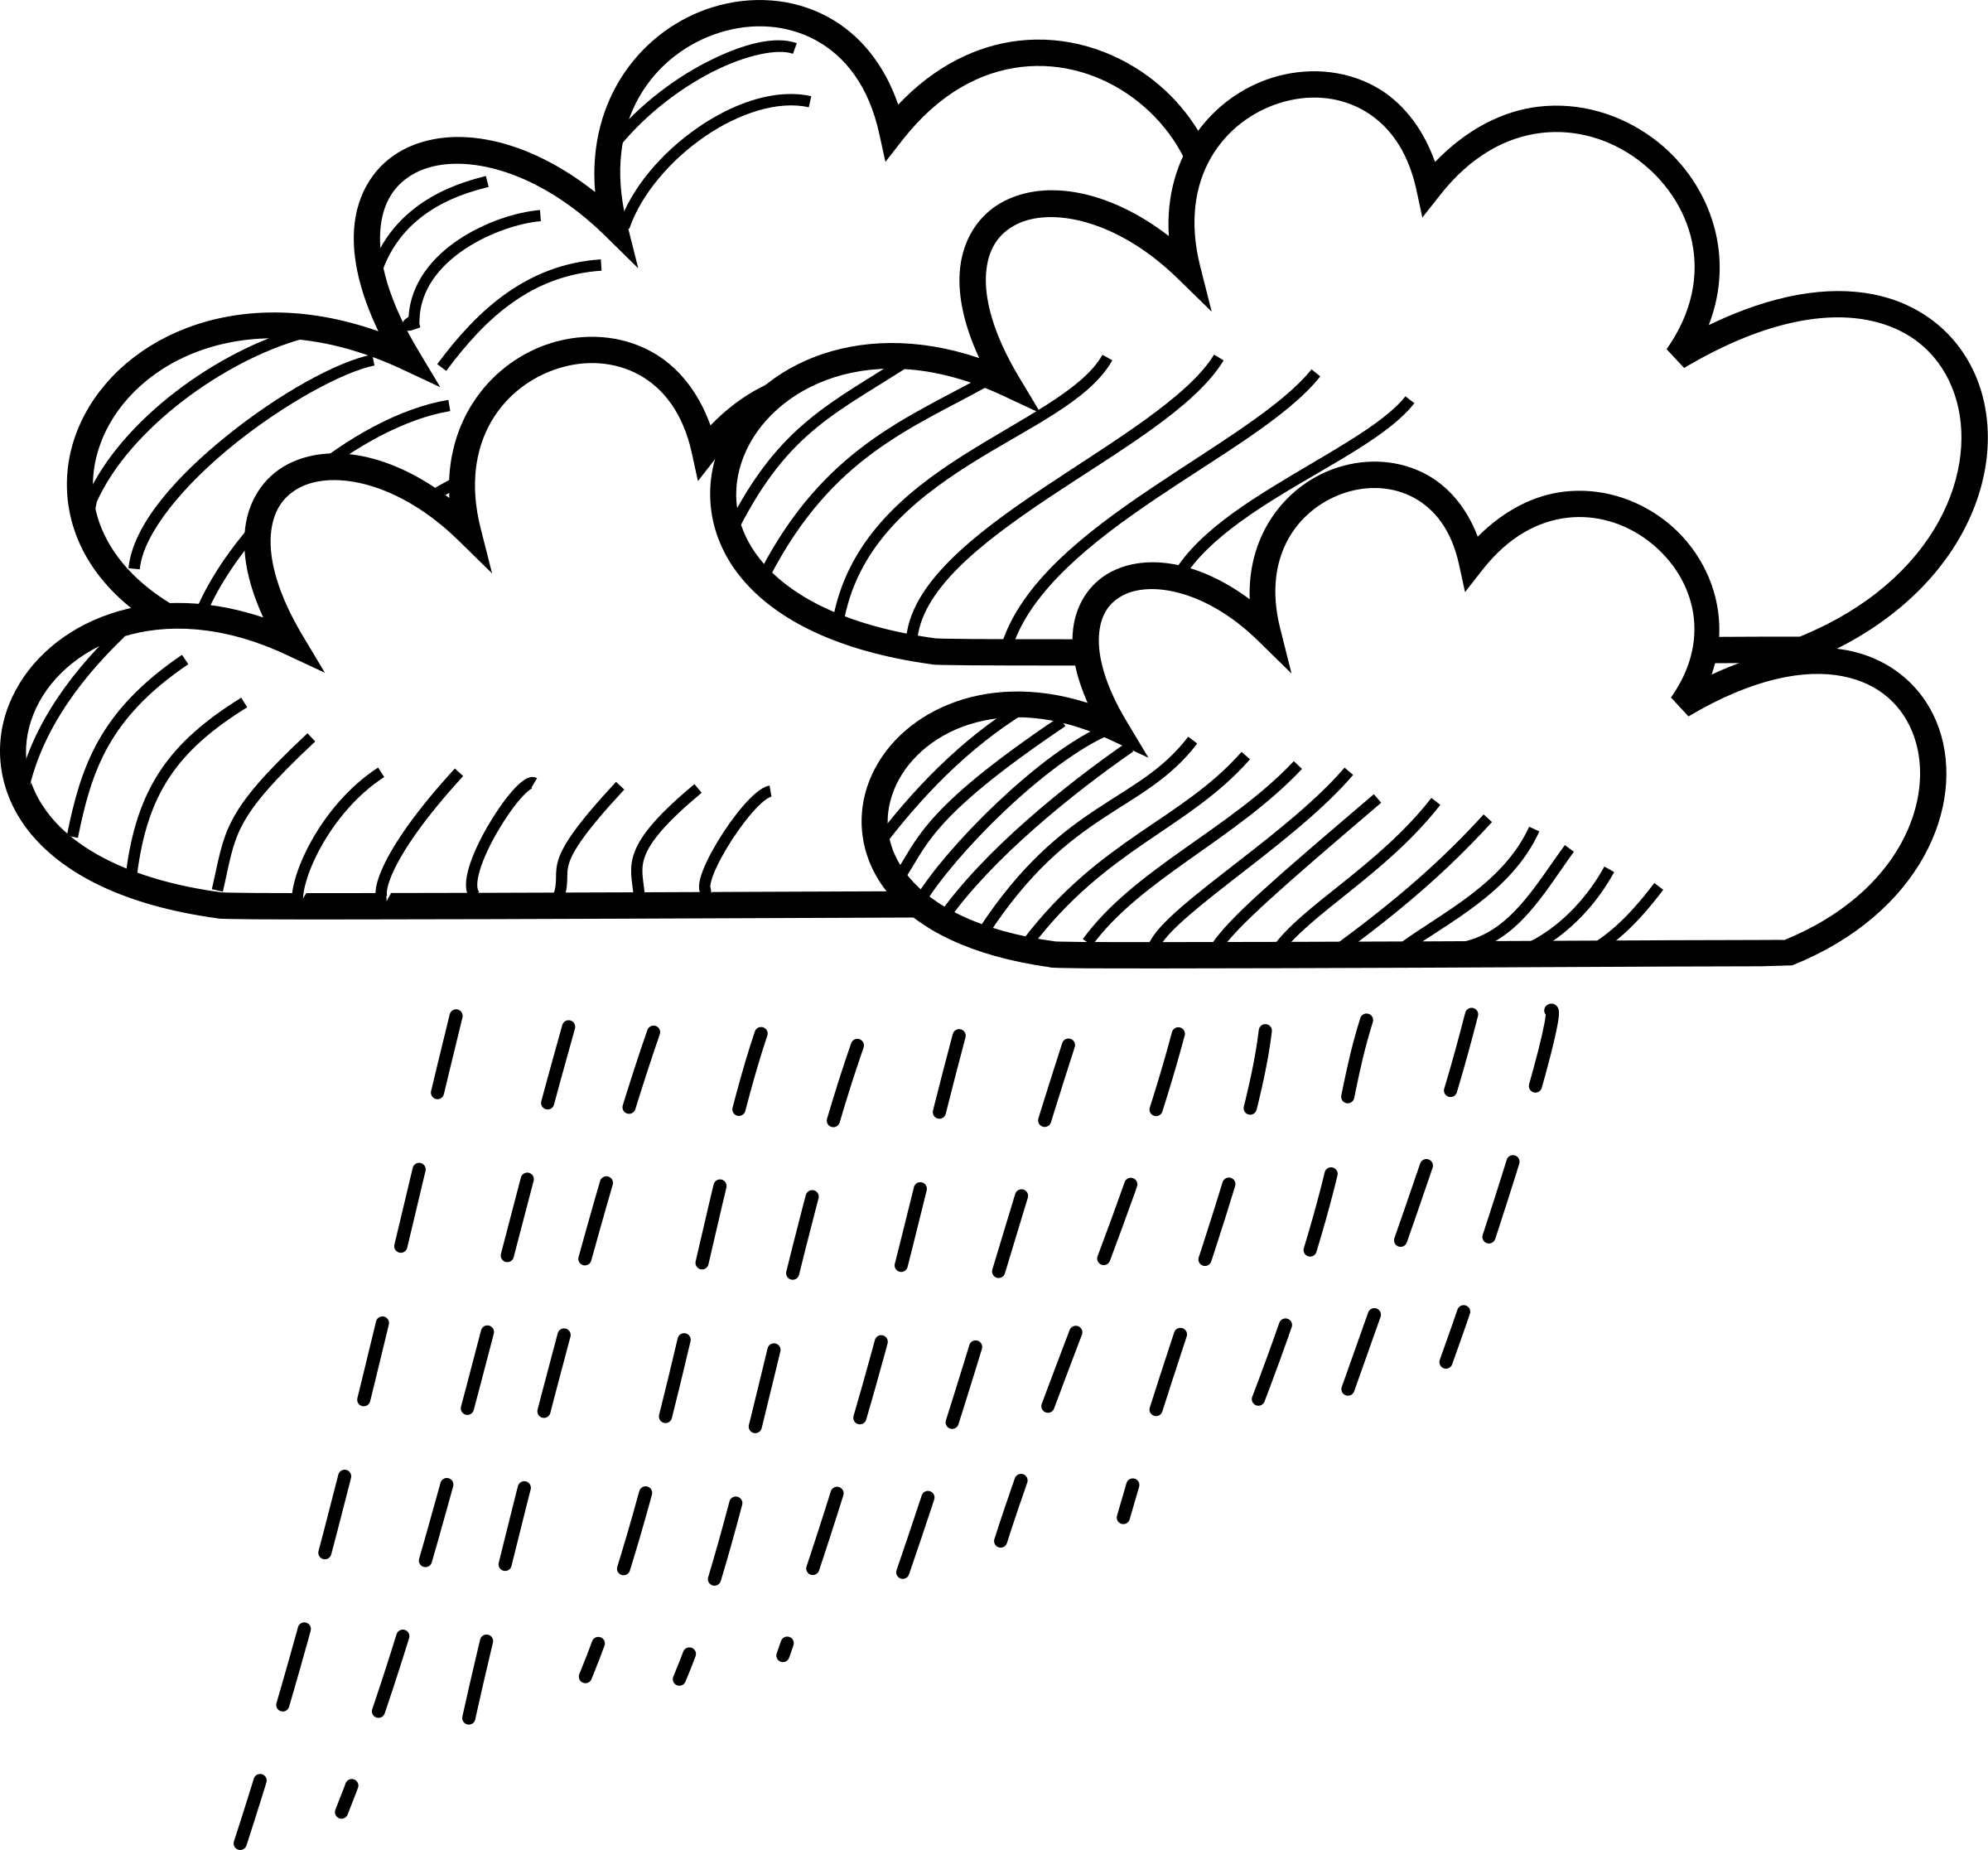 Xfig Line Drawing : Clipart rainy stick figure cloud cluster